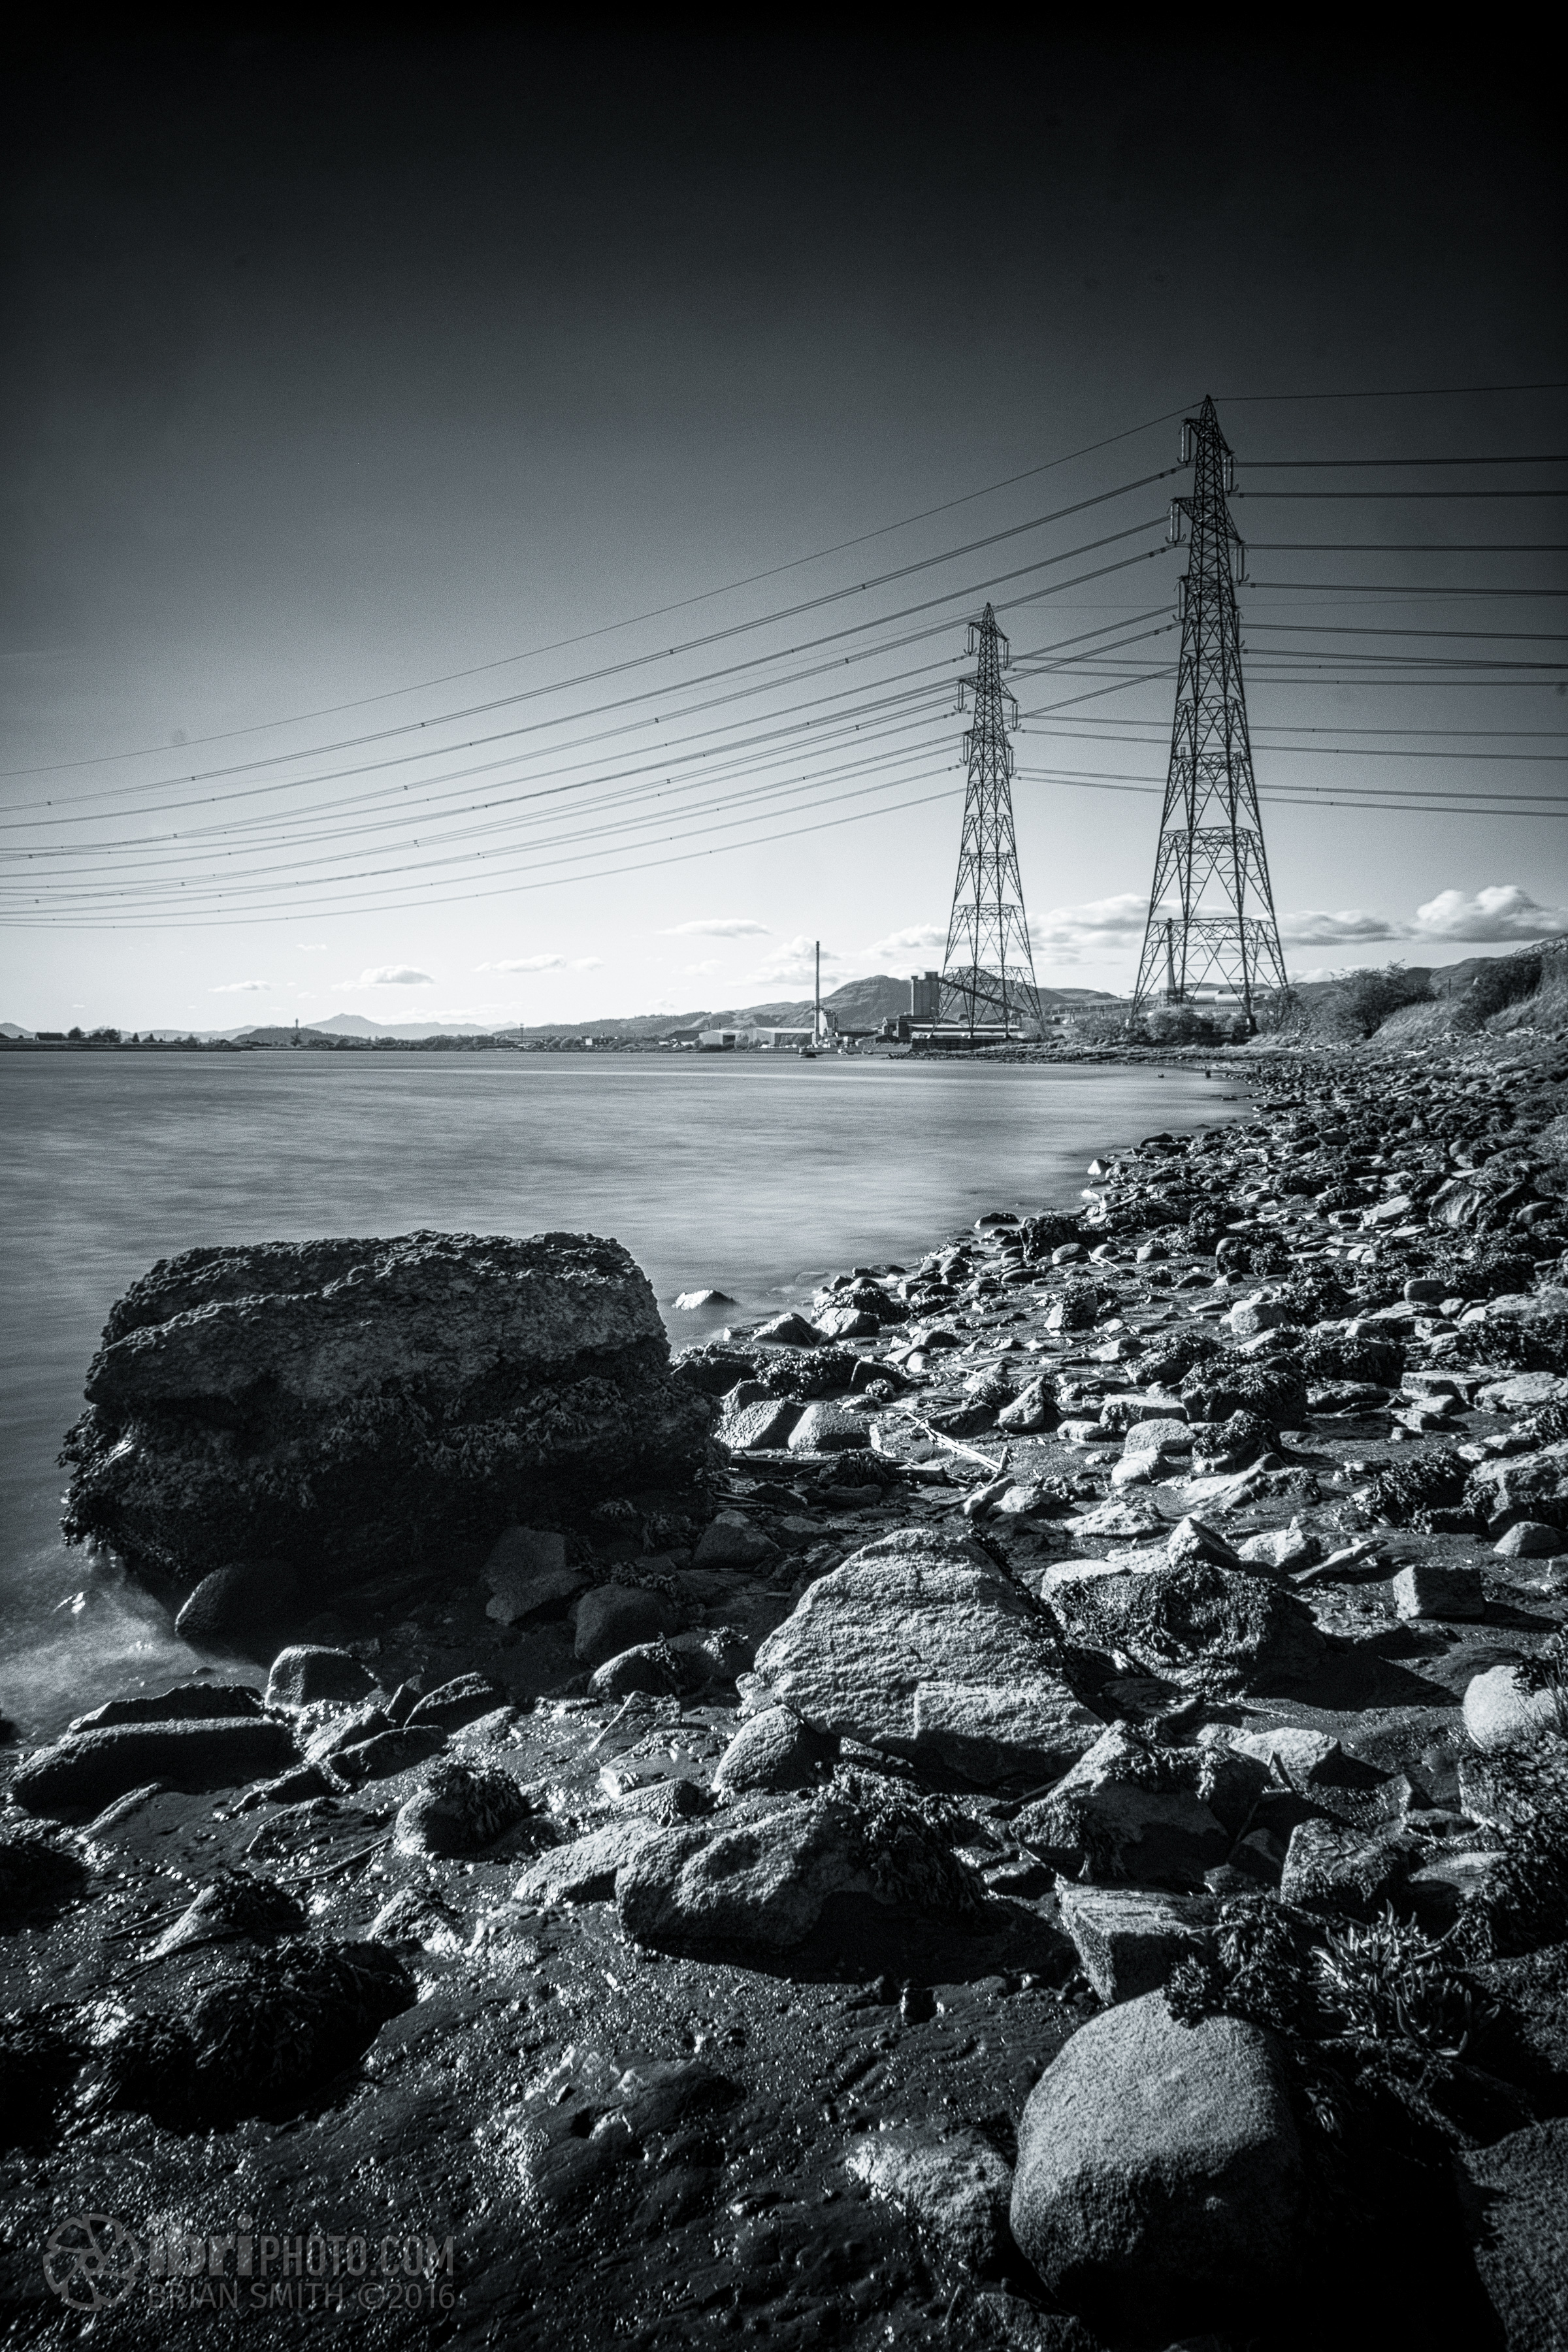 The usual pylons, this time shot from a bit further down the River Forth, with the glass factory beyond.